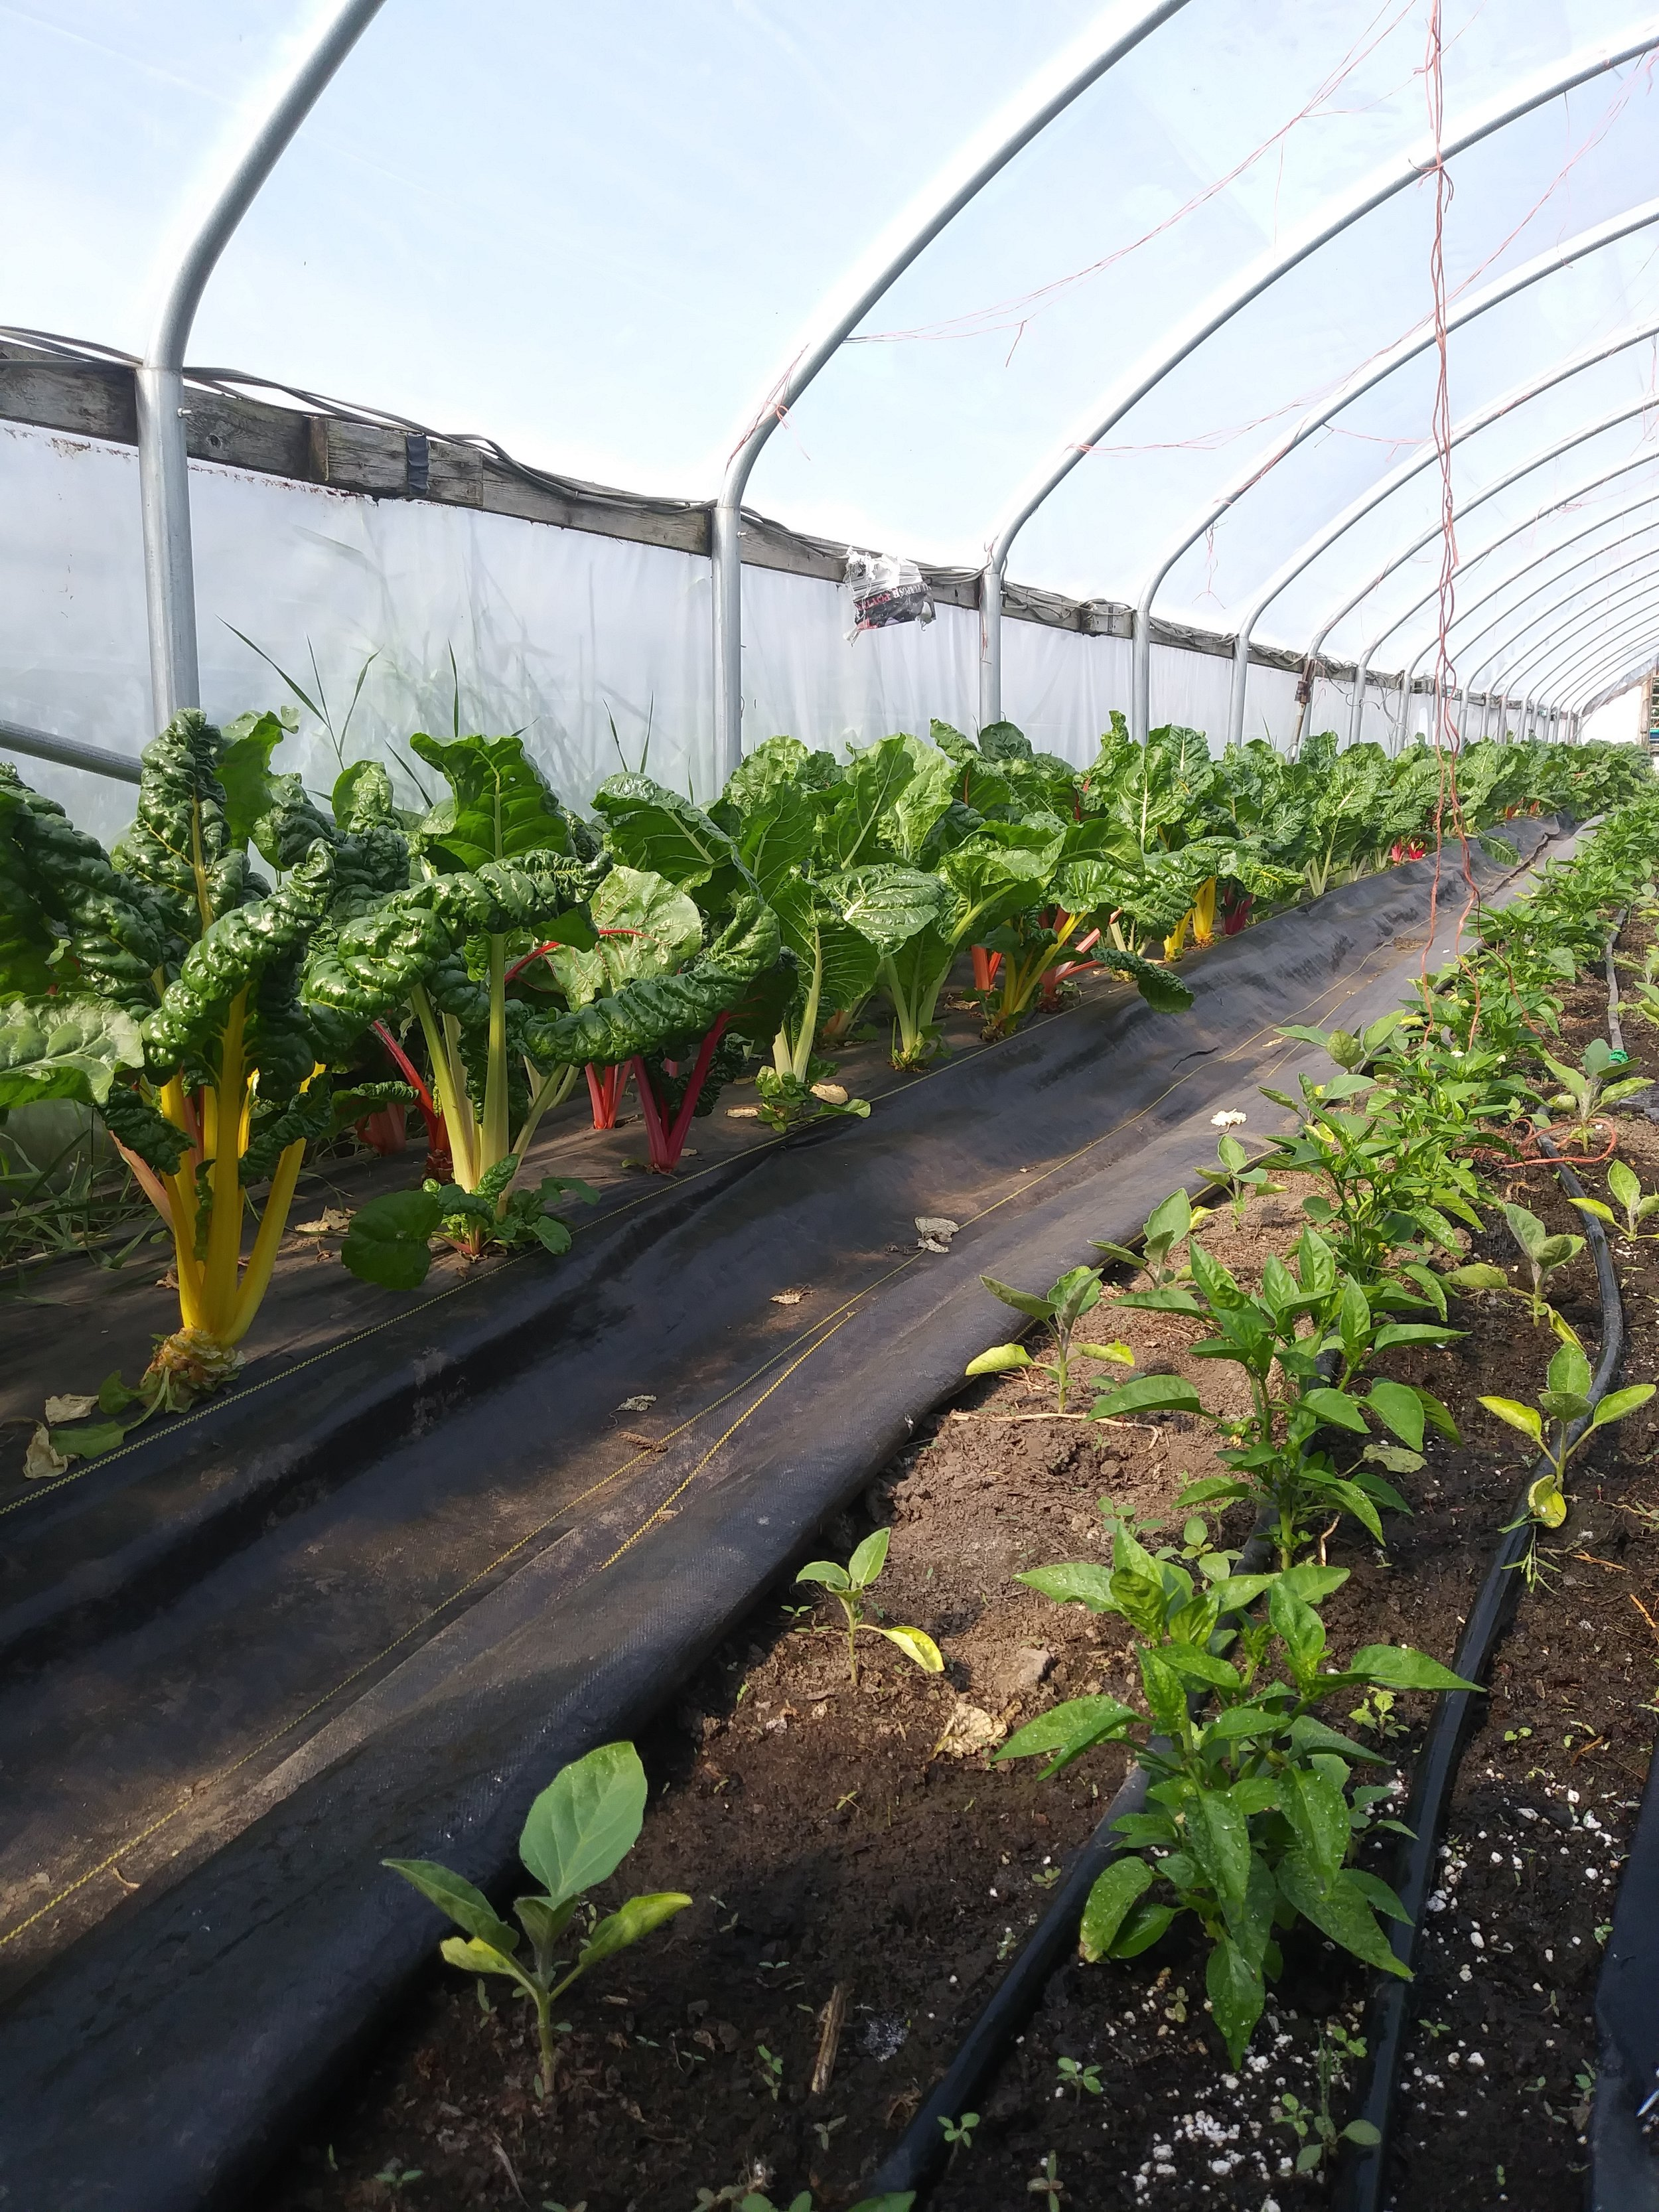 Rainbow chard and peppers growing in a hoop house.